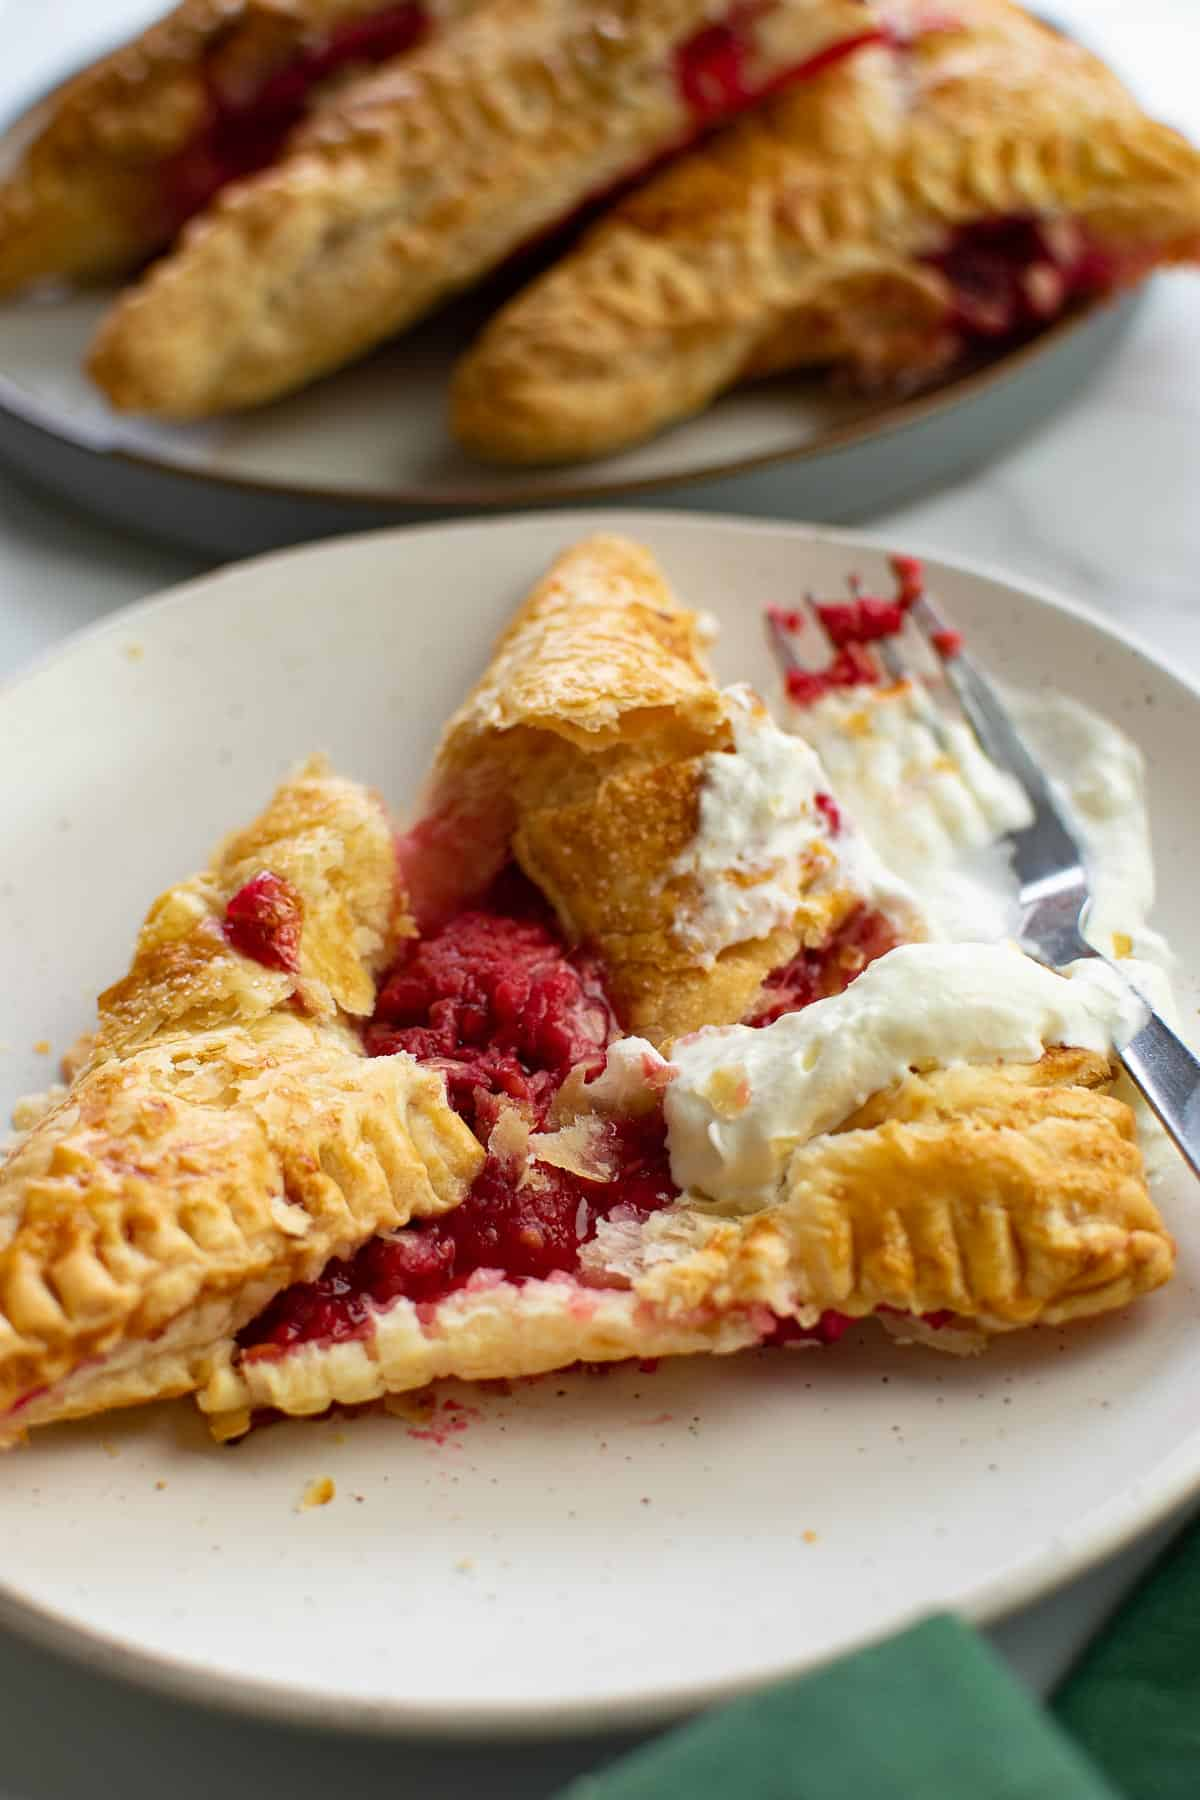 Served raspberry turnovers on plates.